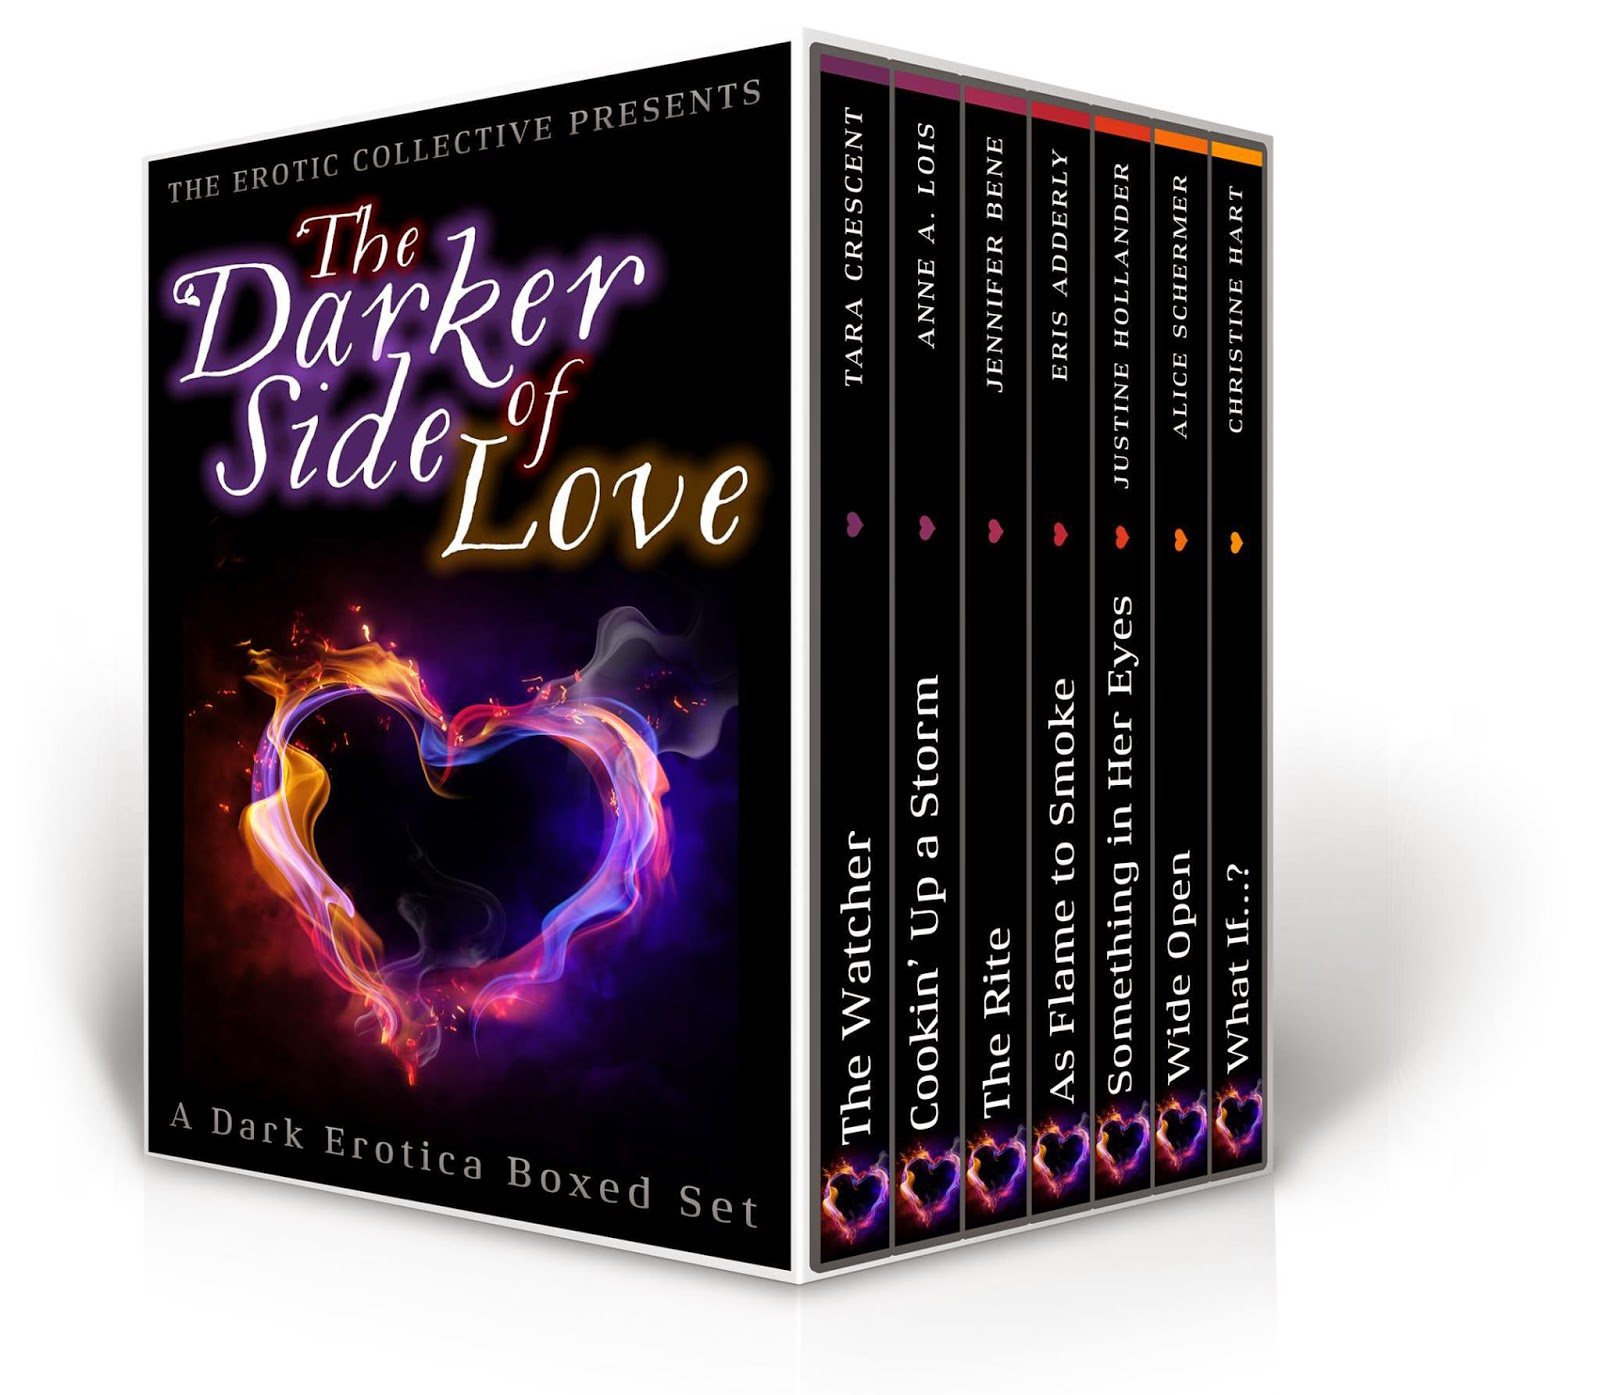 The Darker Side of Love book cover image